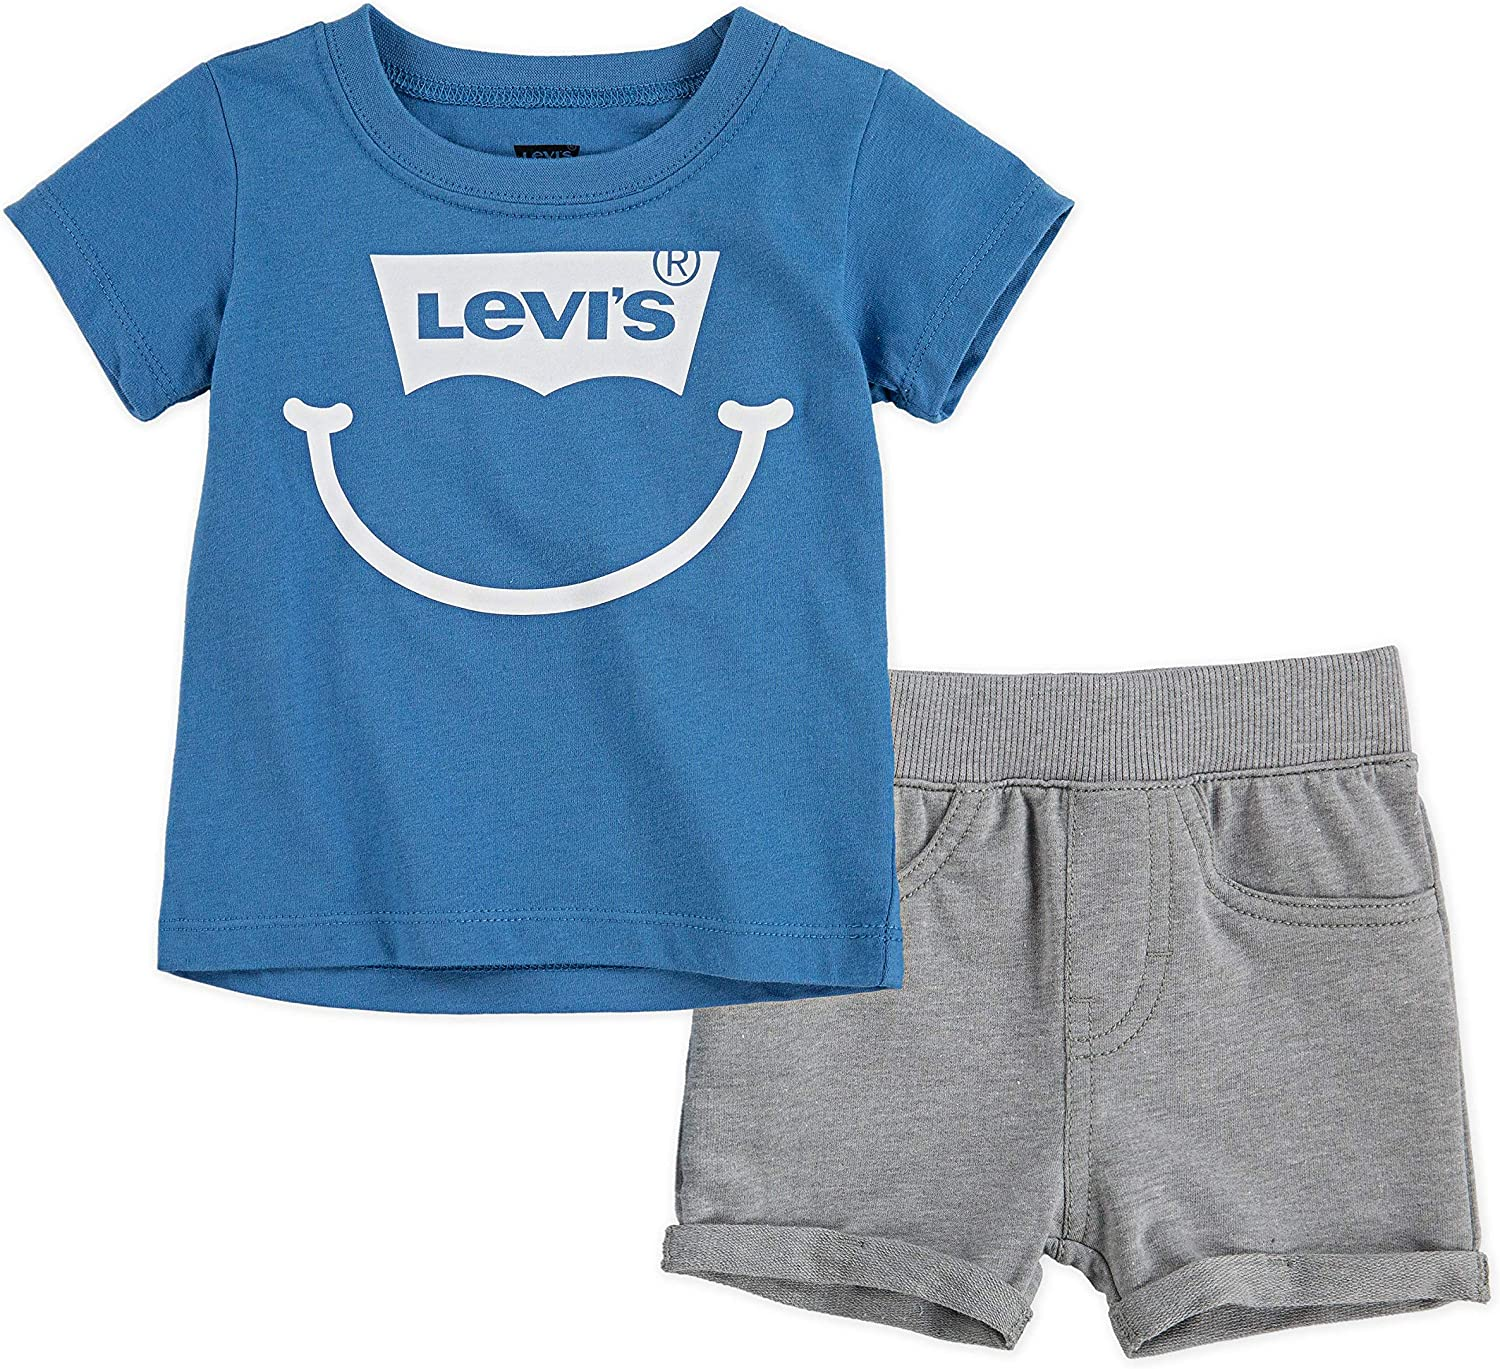 Levi's Baby Boys' Graphic T-Shirt and Shorts 2-Piece Outfit Set